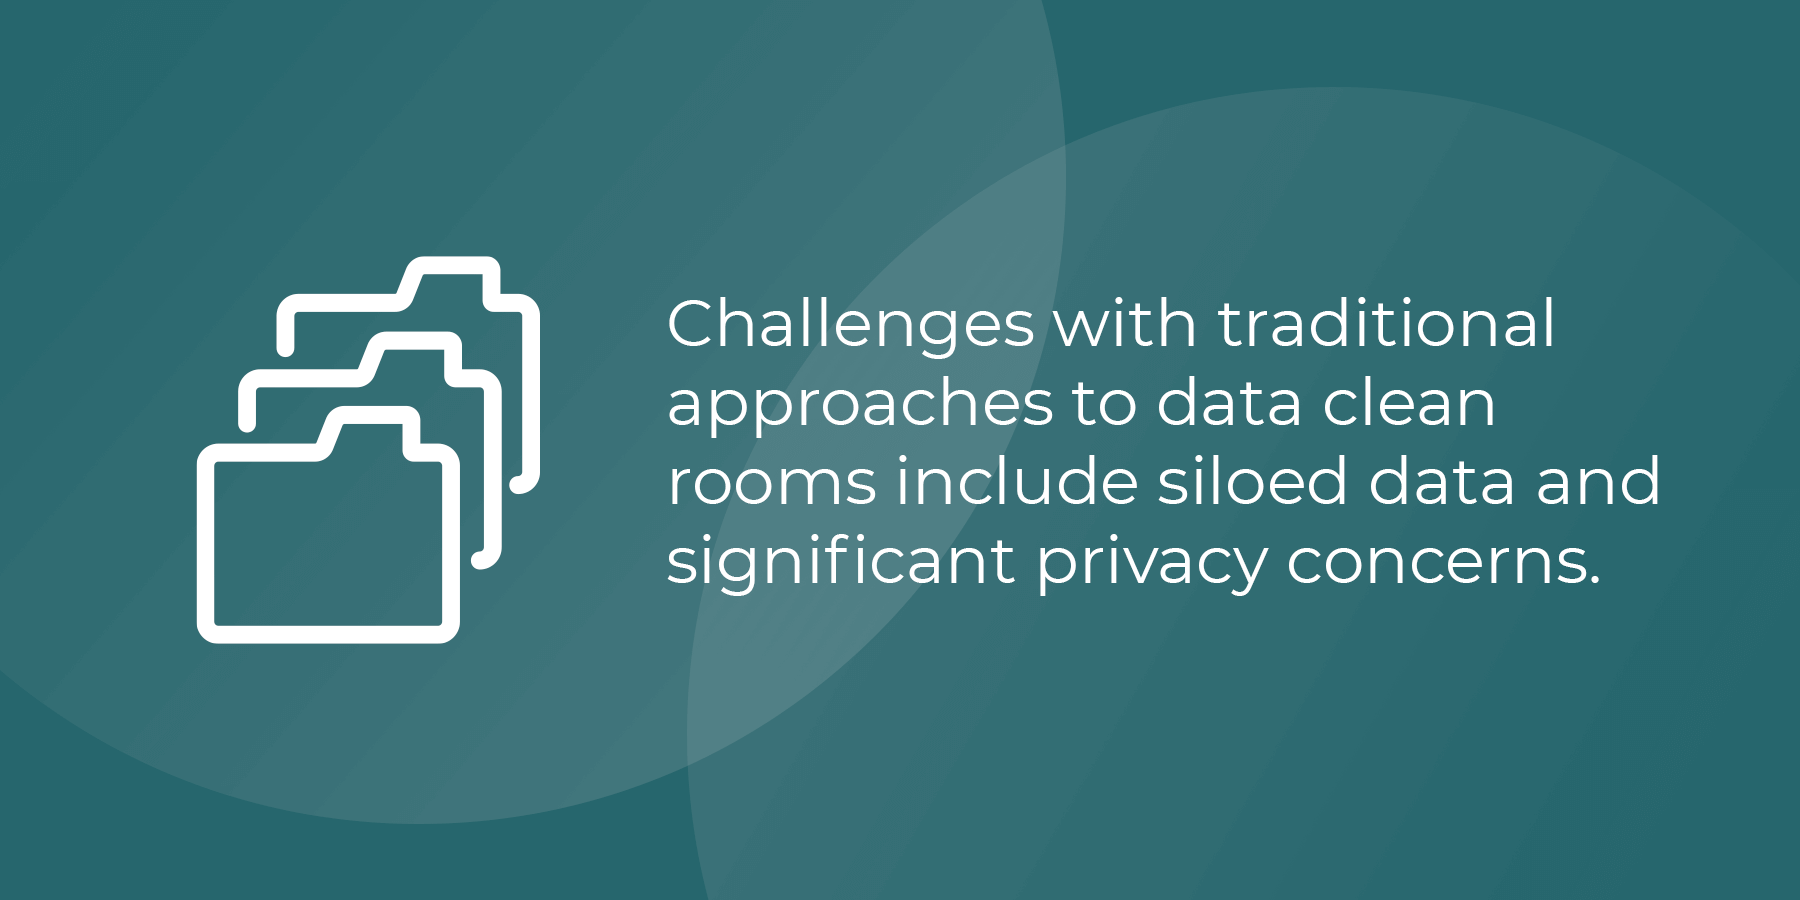 Challenges with traditional clean rooms include siloed data and significant privacy concerns